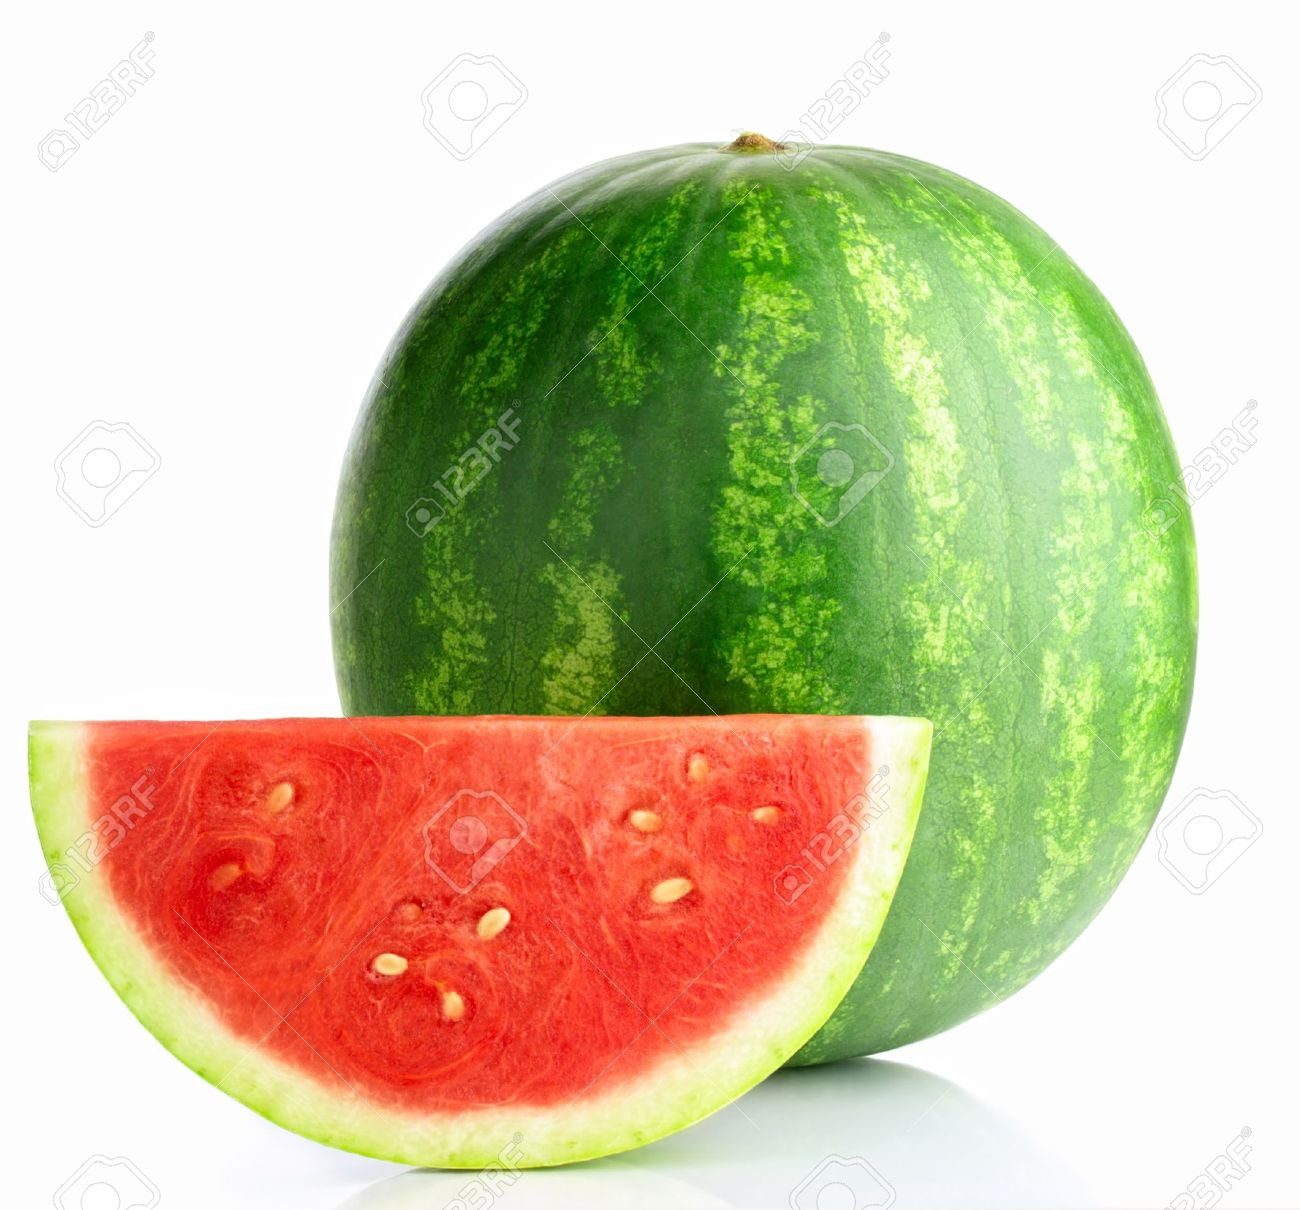 Watermelon isolated on white background Stock Photo - 9654112